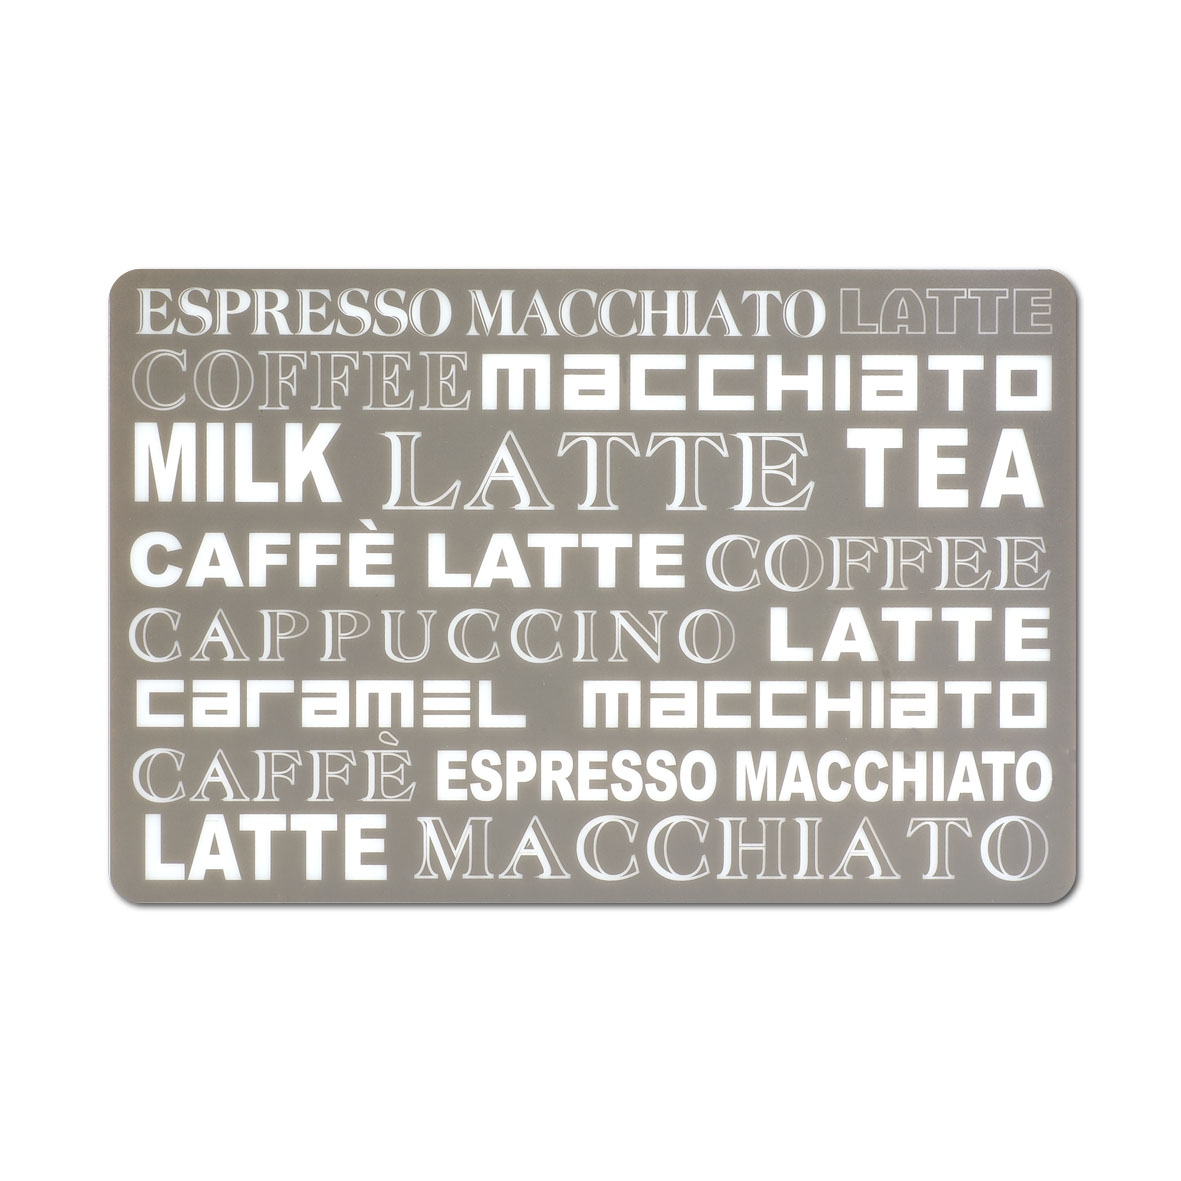 Suport vesela din PP (polipropilena), Latte Macchiato Mocca, L43,5xl28,5 cm imagine